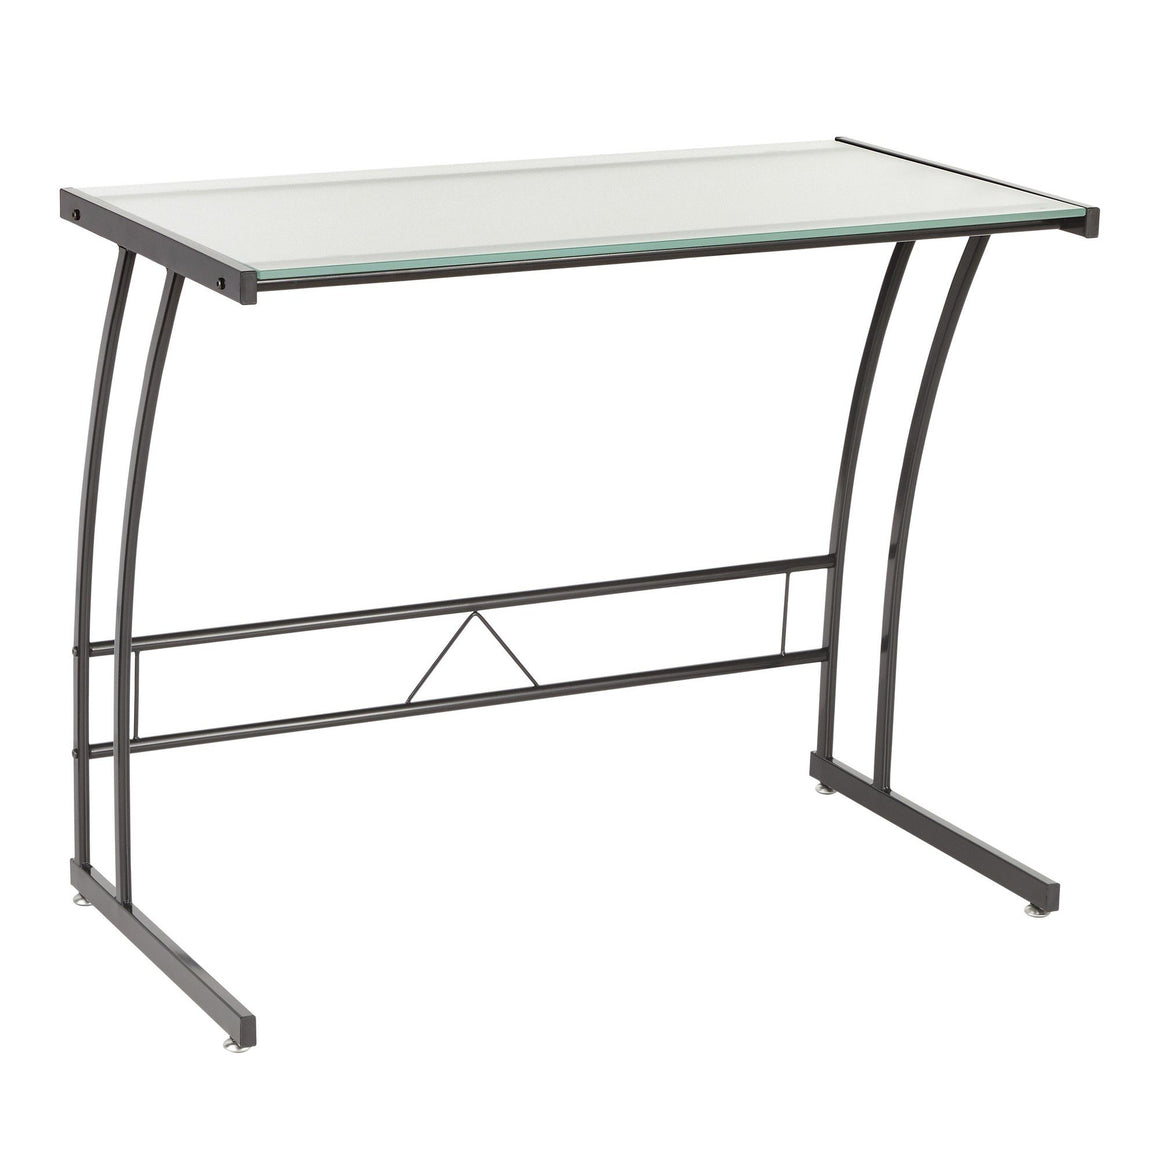 Sigma Contemporary Desk in Black Frame and White by LumiSource